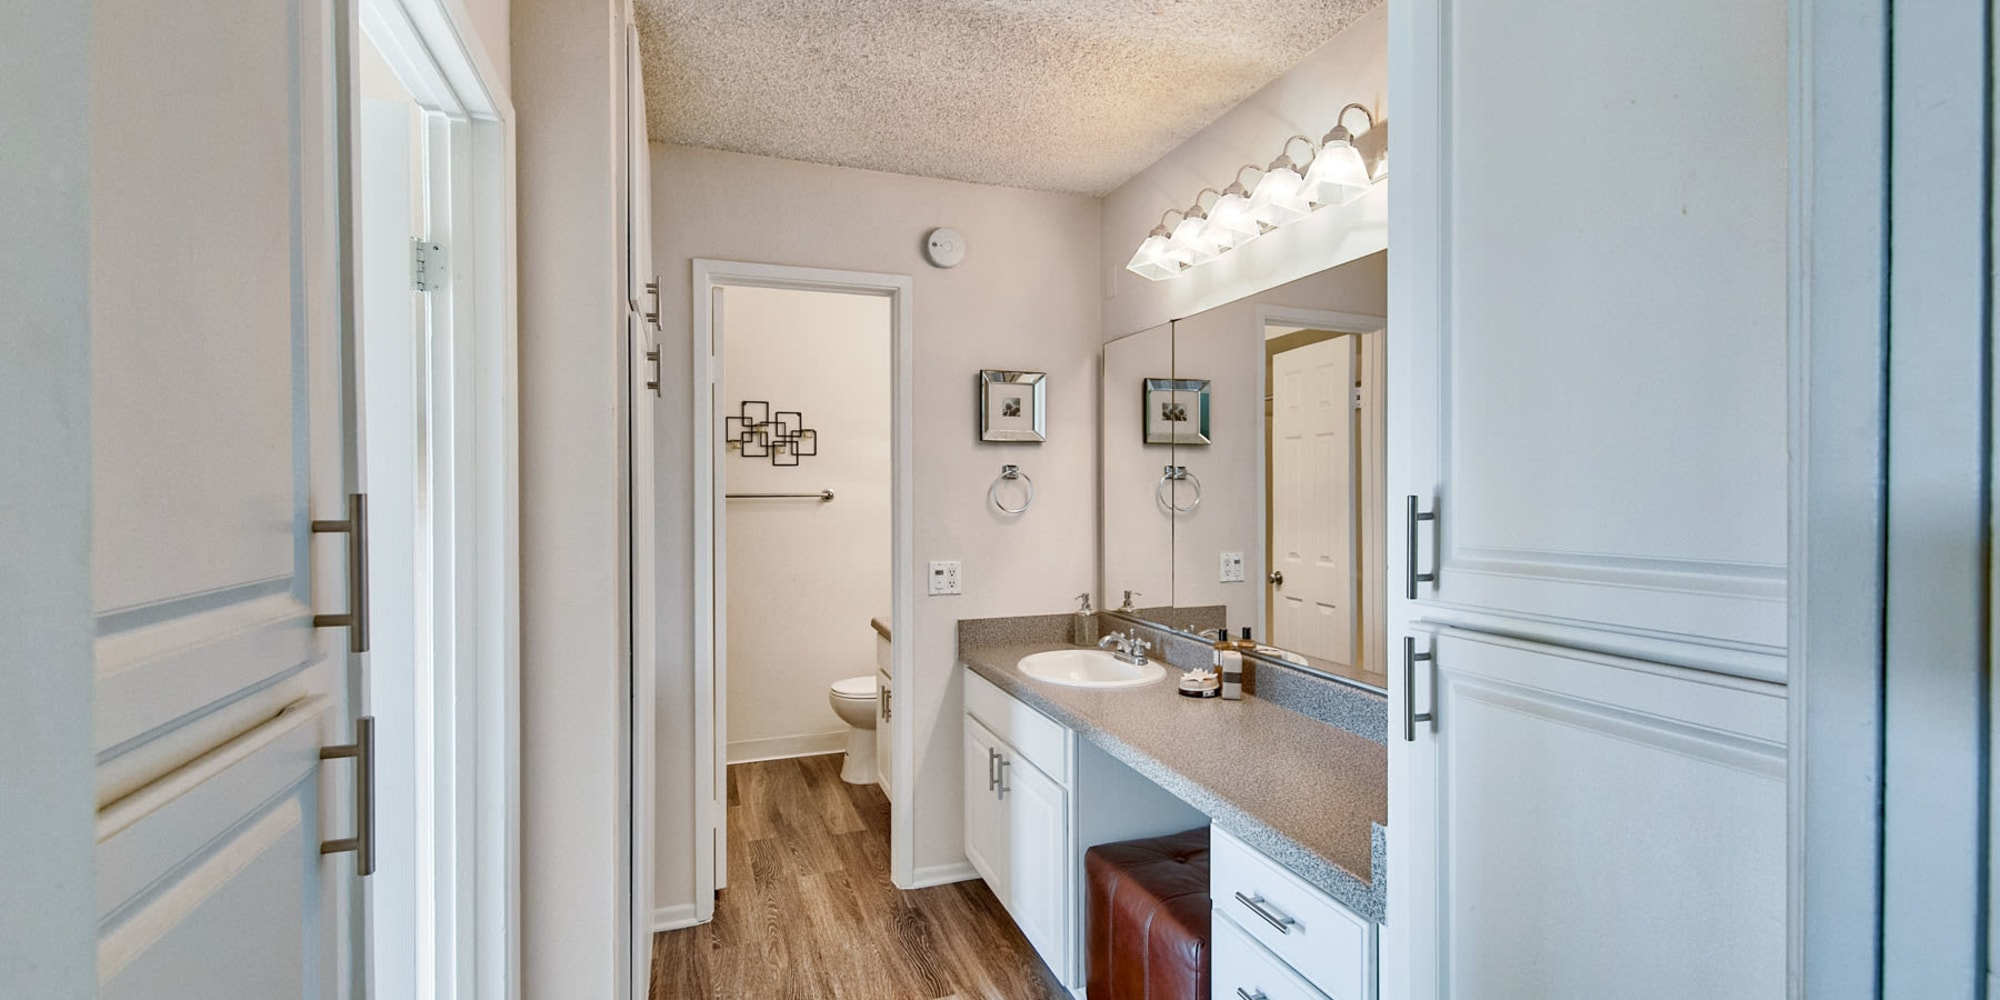 Hardwood flooring and extra storage in a model home's bathroom at Mediterranean Village Apartments in Costa Mesa, California